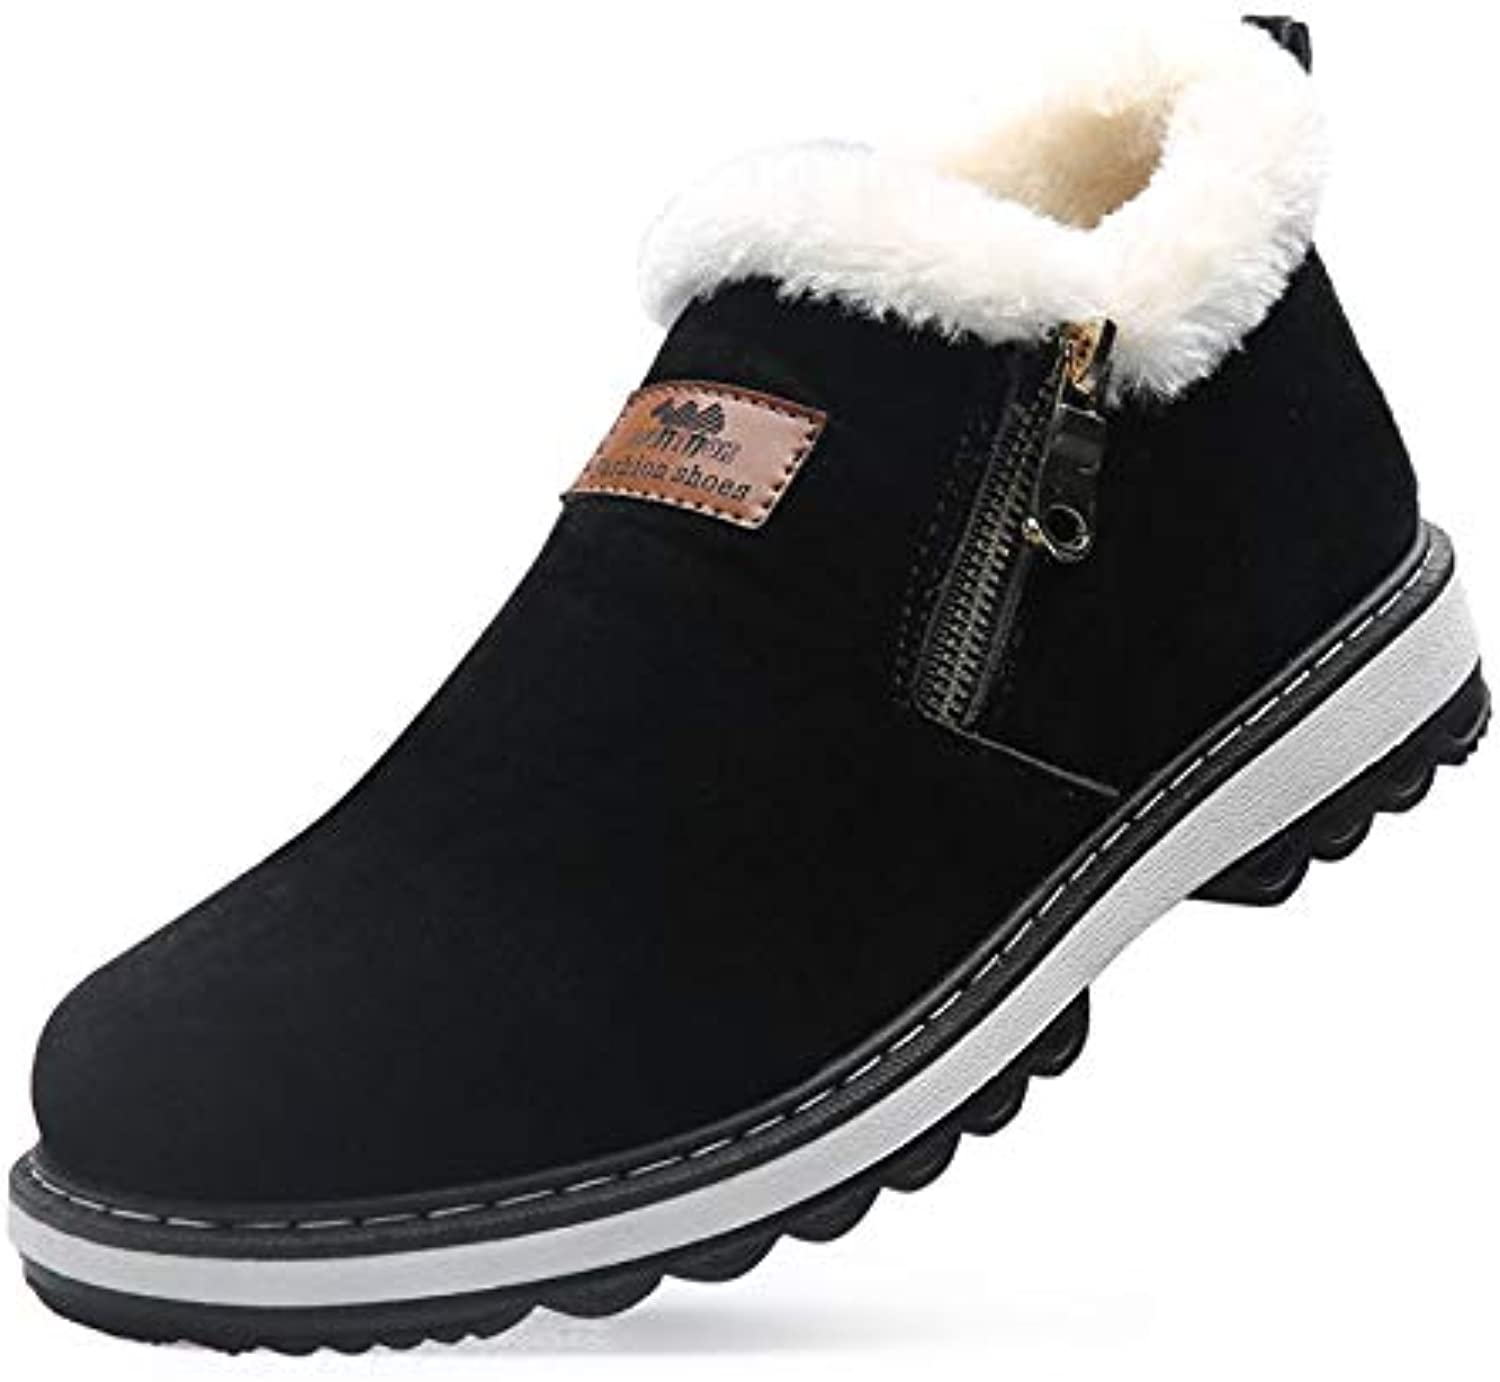 LOVDRAM Men'S shoes Autumn Winter Cotton shoes Men'S Fashion Sports shoes Casual Plus Velvet Warm Running Men'S shoes